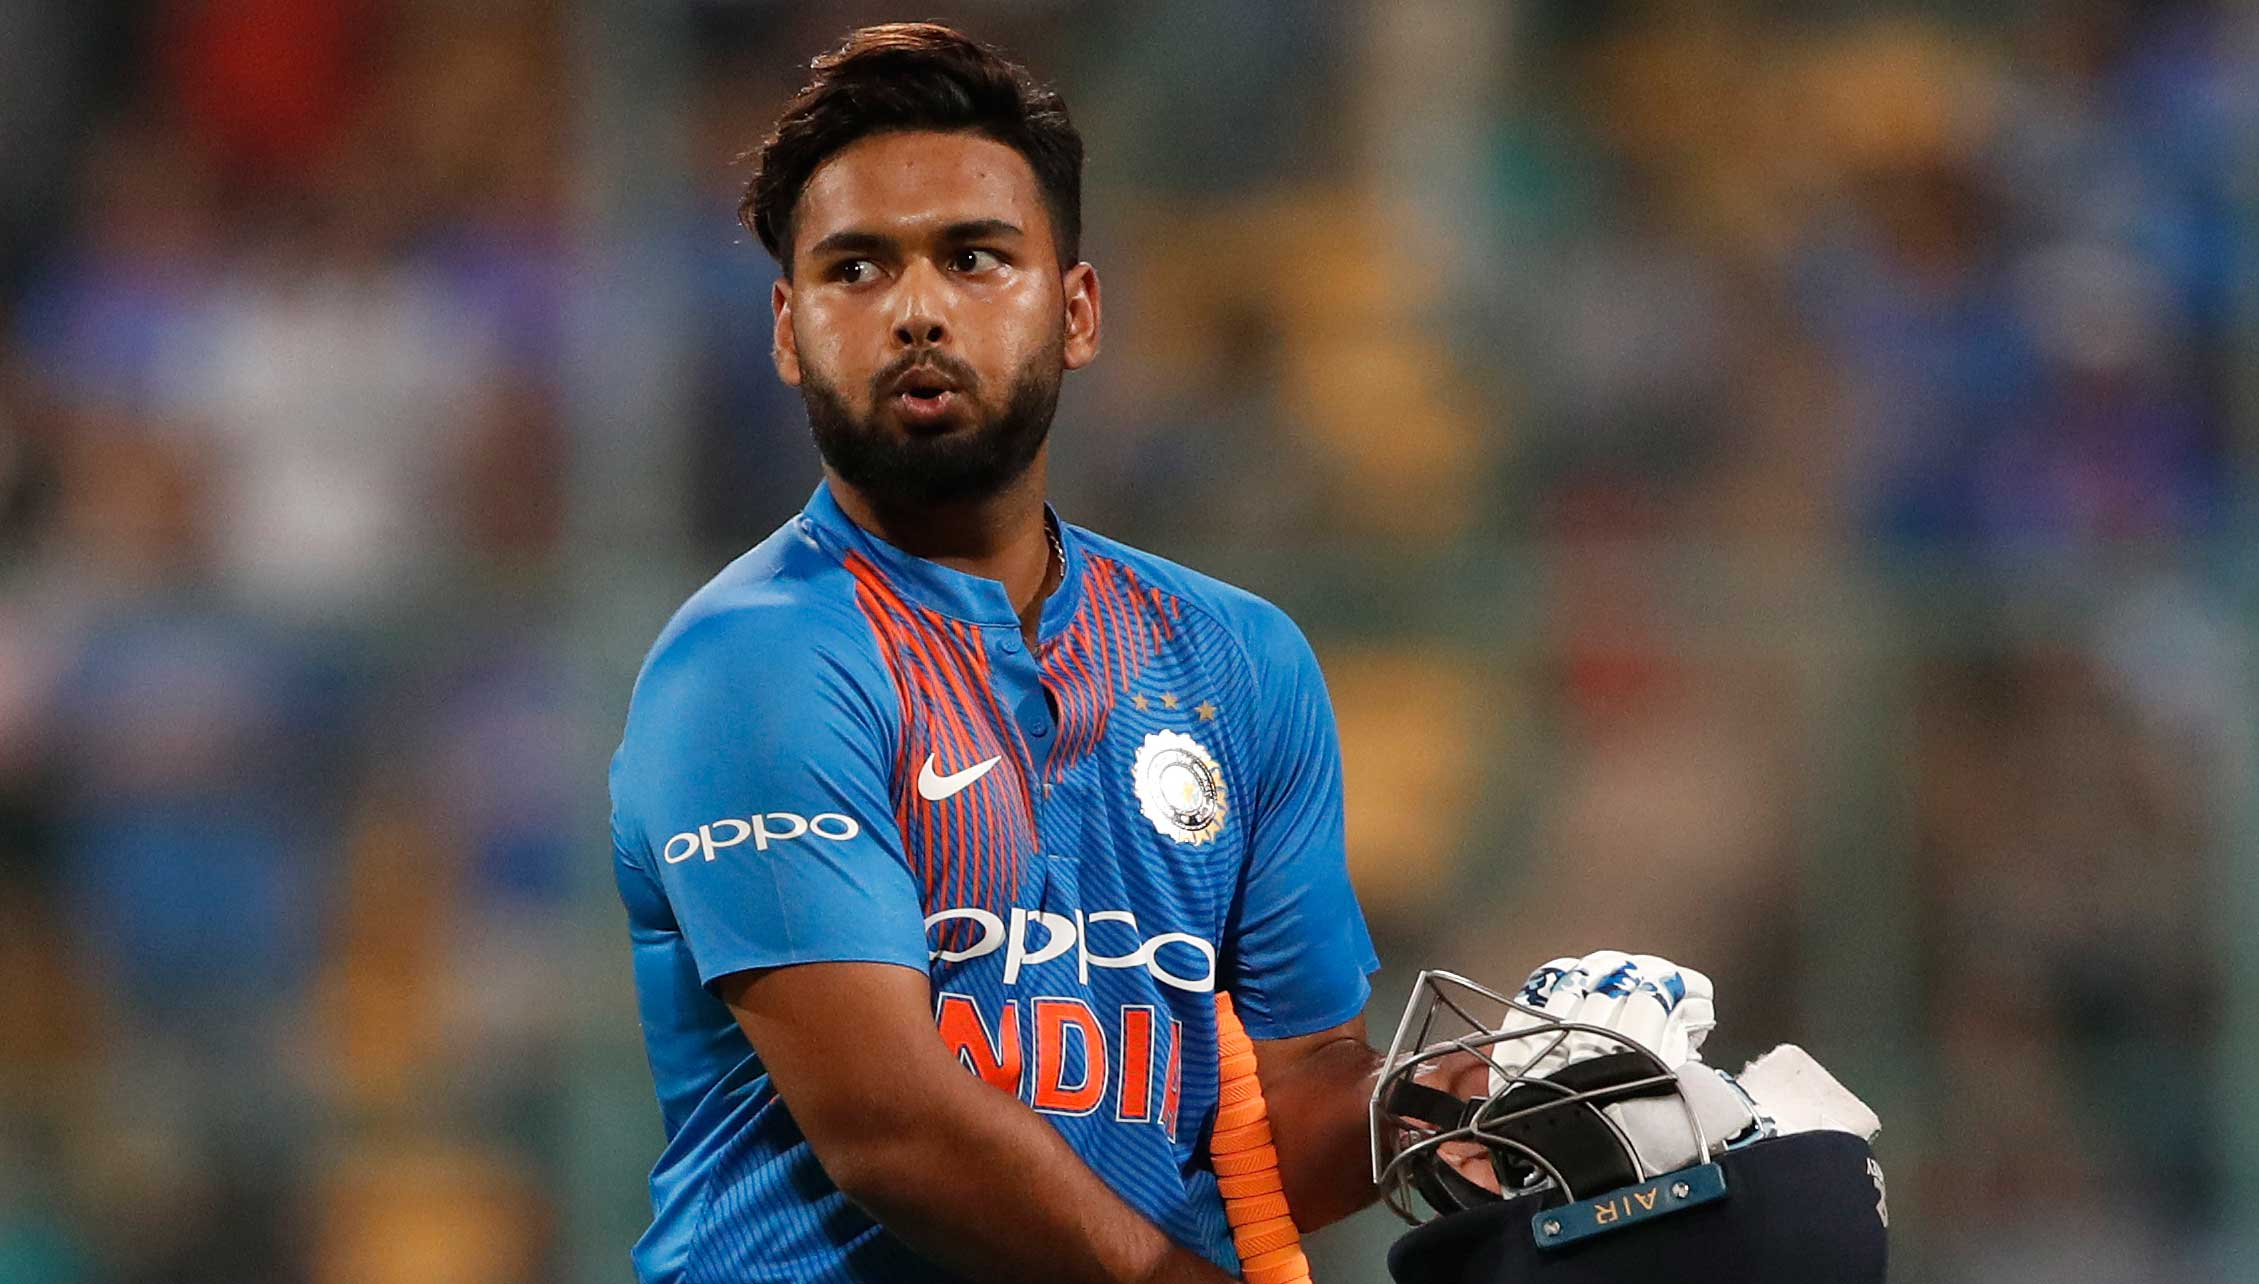 Rishabh Pant gets the backing of India's Batting coach